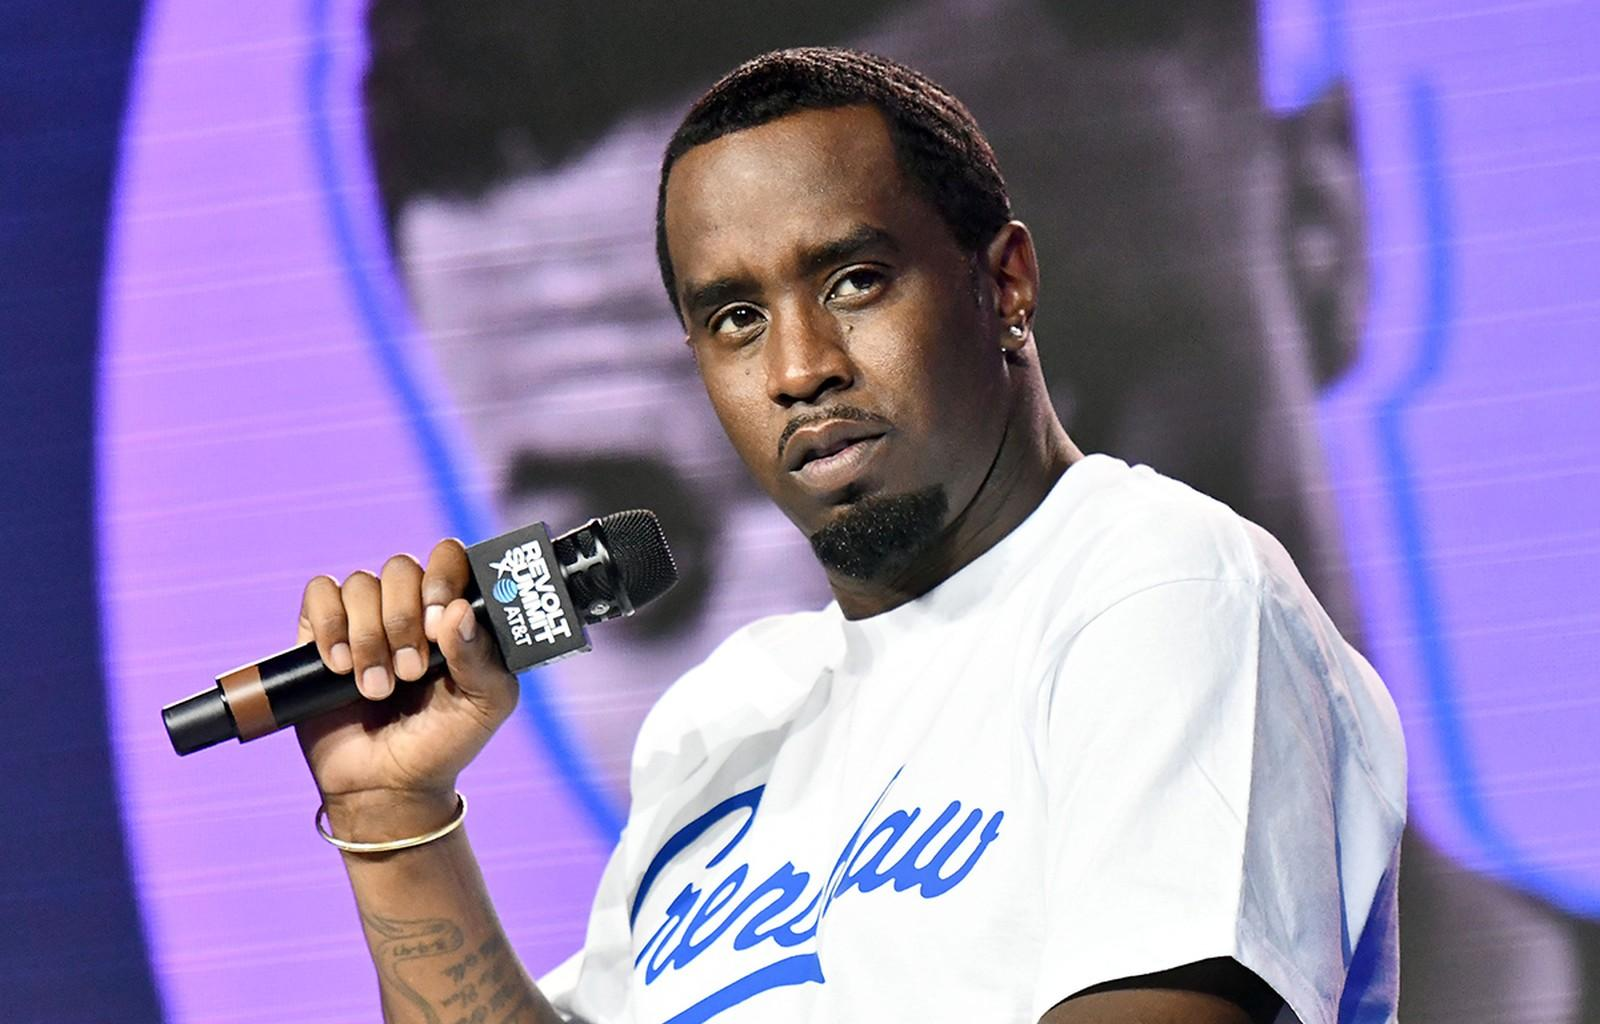 Diddy Posts An Emotional Message Following The Death Of Black Rob